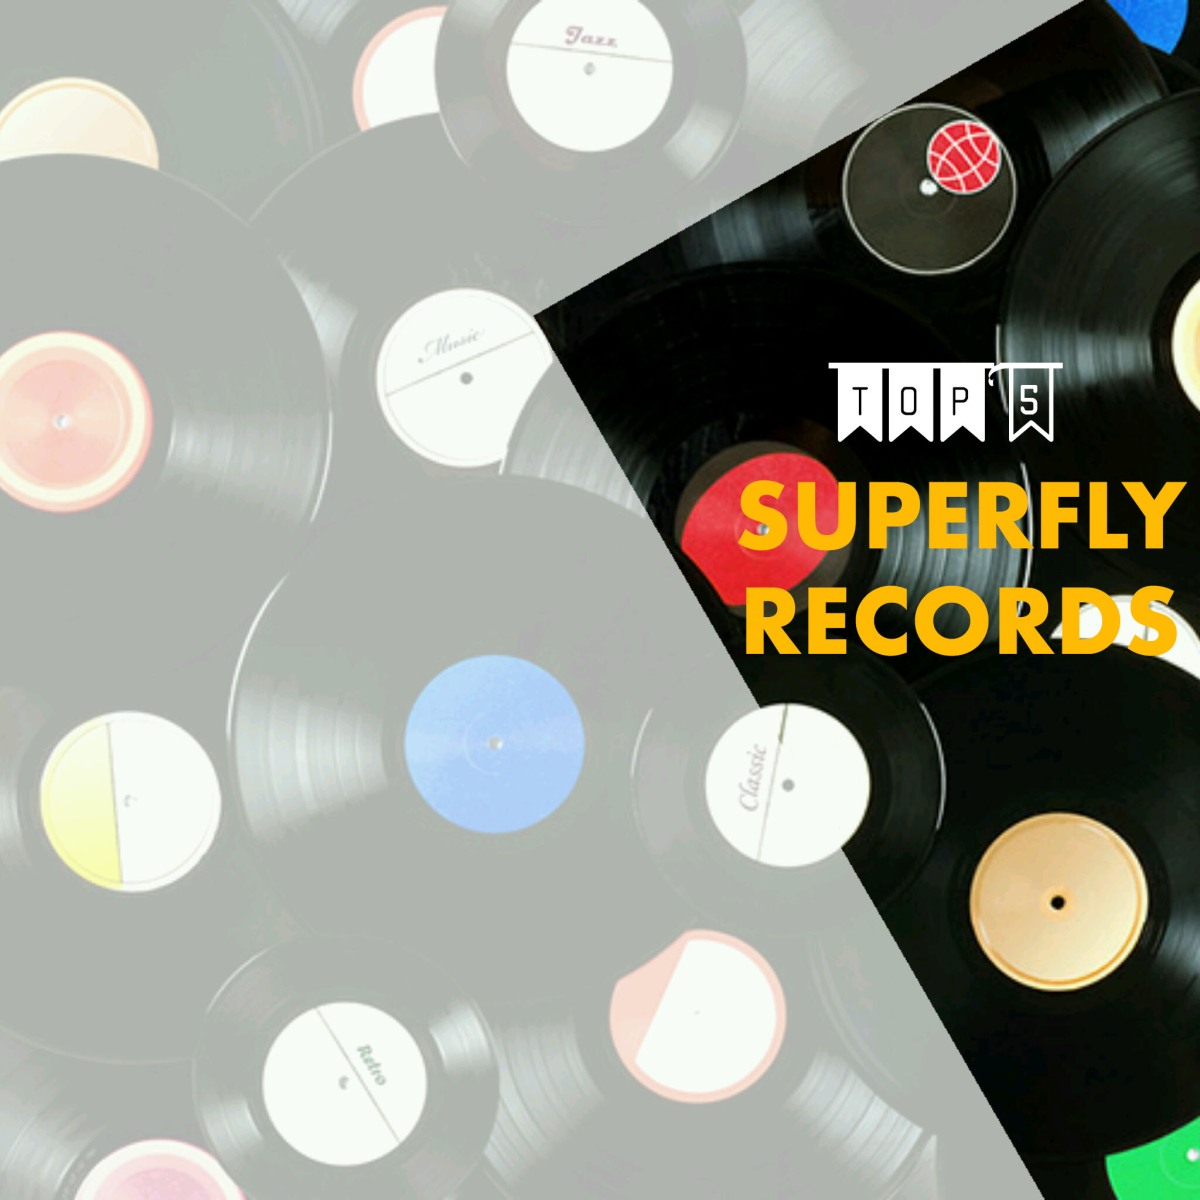 TOP 5 – Superfly Records